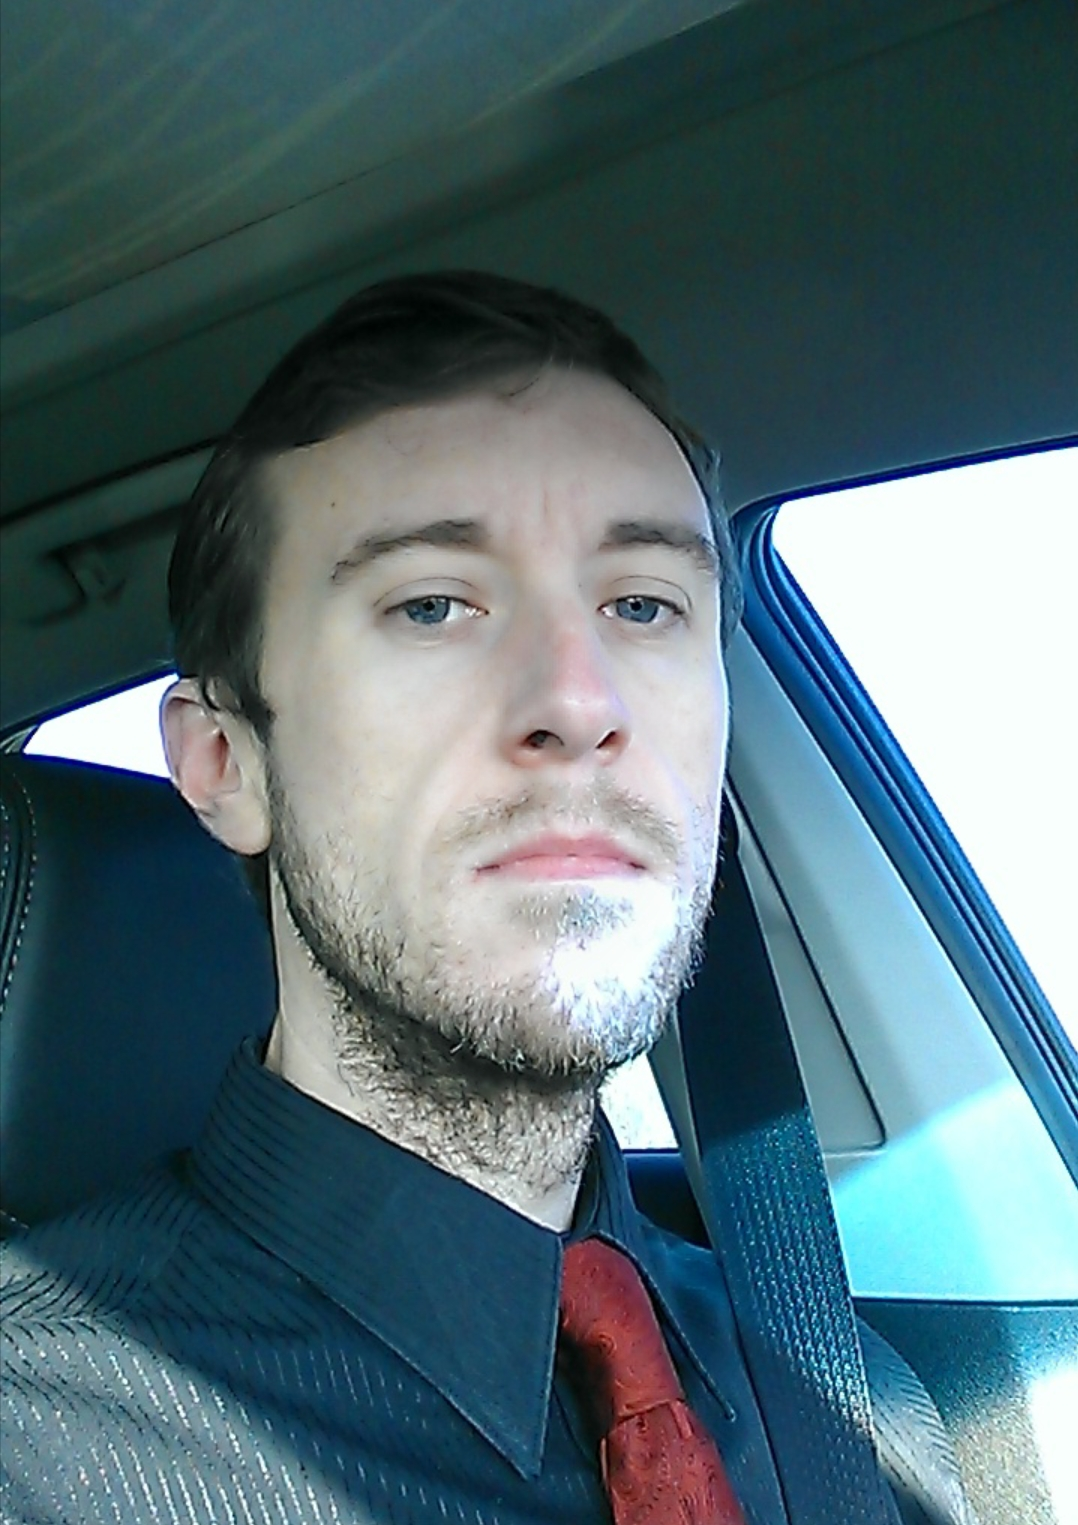 Michael MJ The Terrible Johnson Suit and Tie Driving Photo